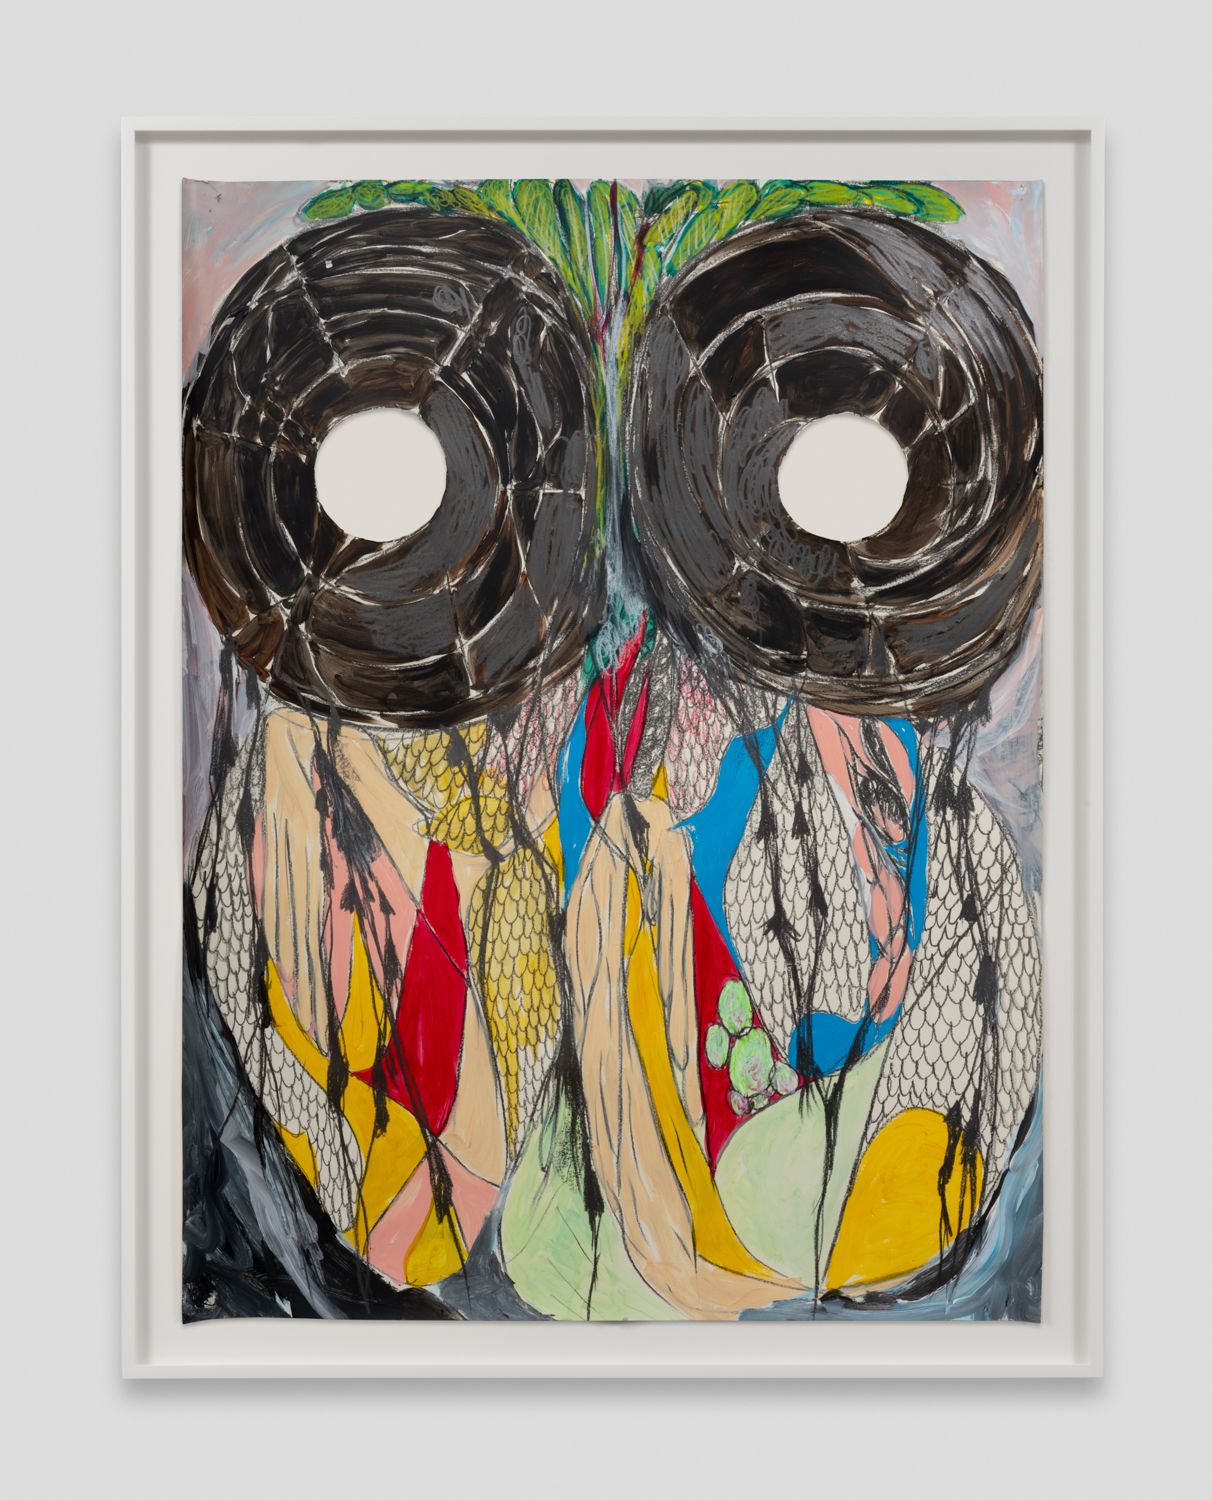 NaotakaHiro  Untitled (Hoot 1)  2018 Acrylic, graphite and grease pencil on paper 42h x 32w in NaoH029